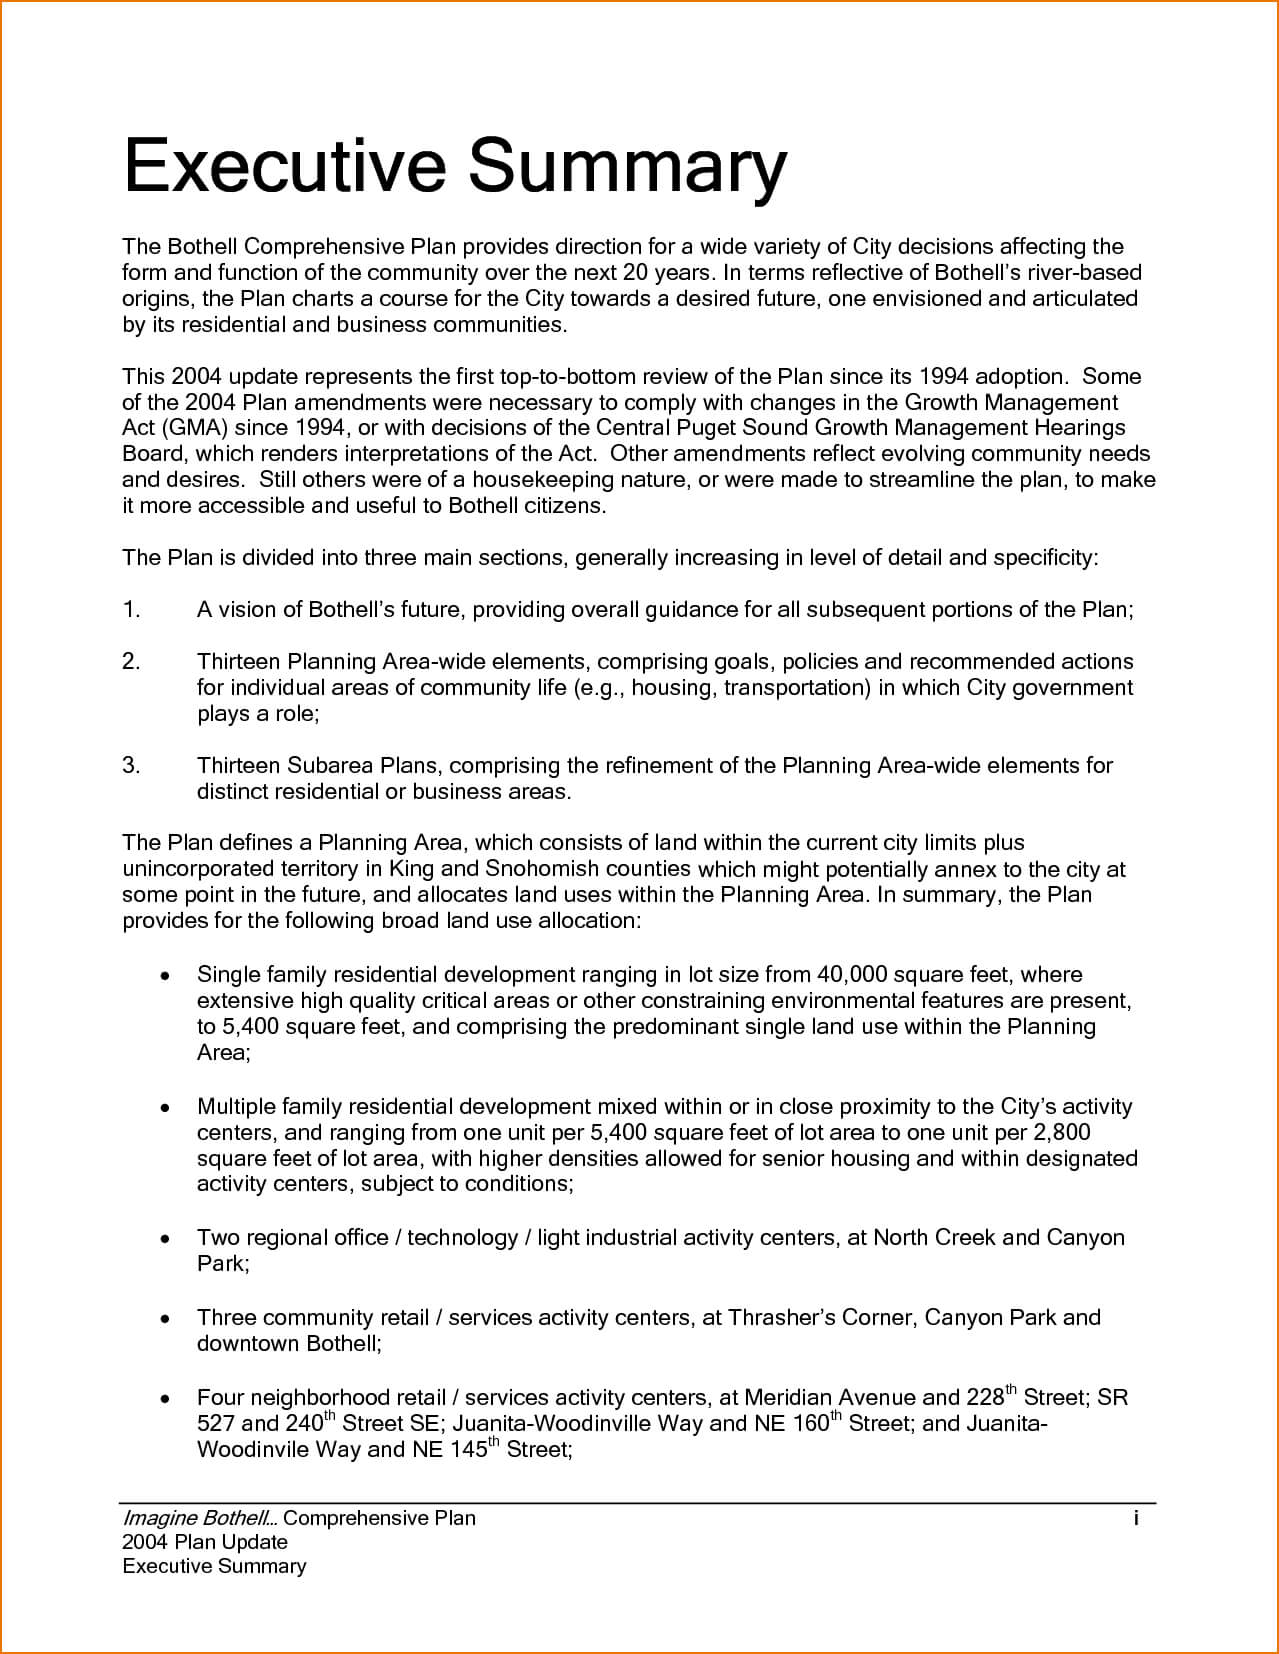 Executive Summary Example Incident Report Template Sample within Evaluation Summary Report Template